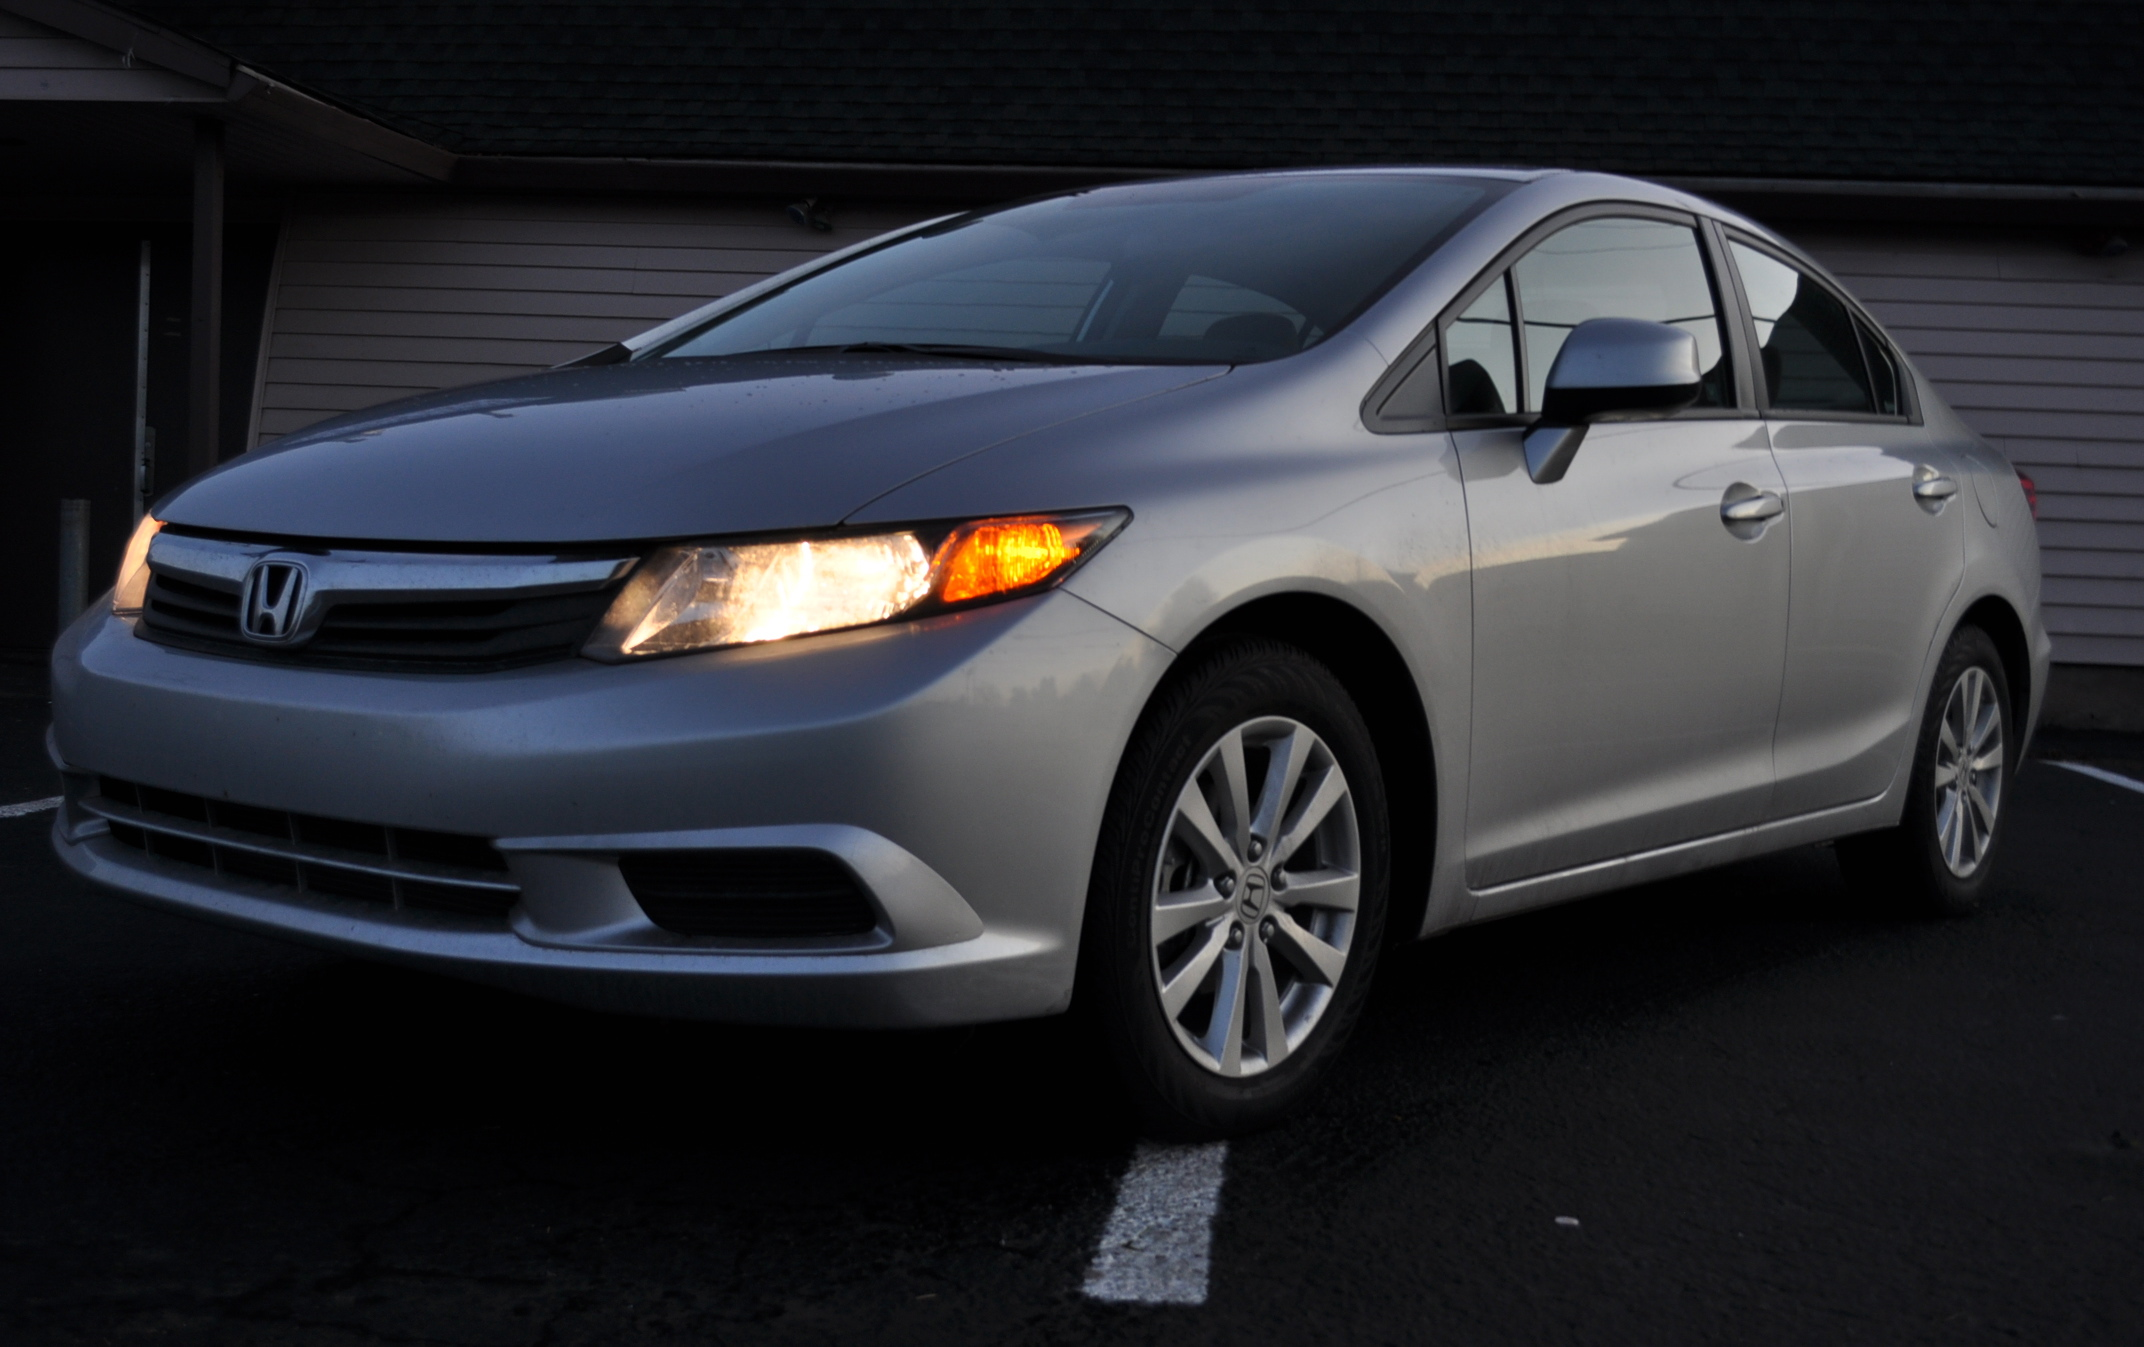 Image Result For Honda Civic Annual Maintenance Cost